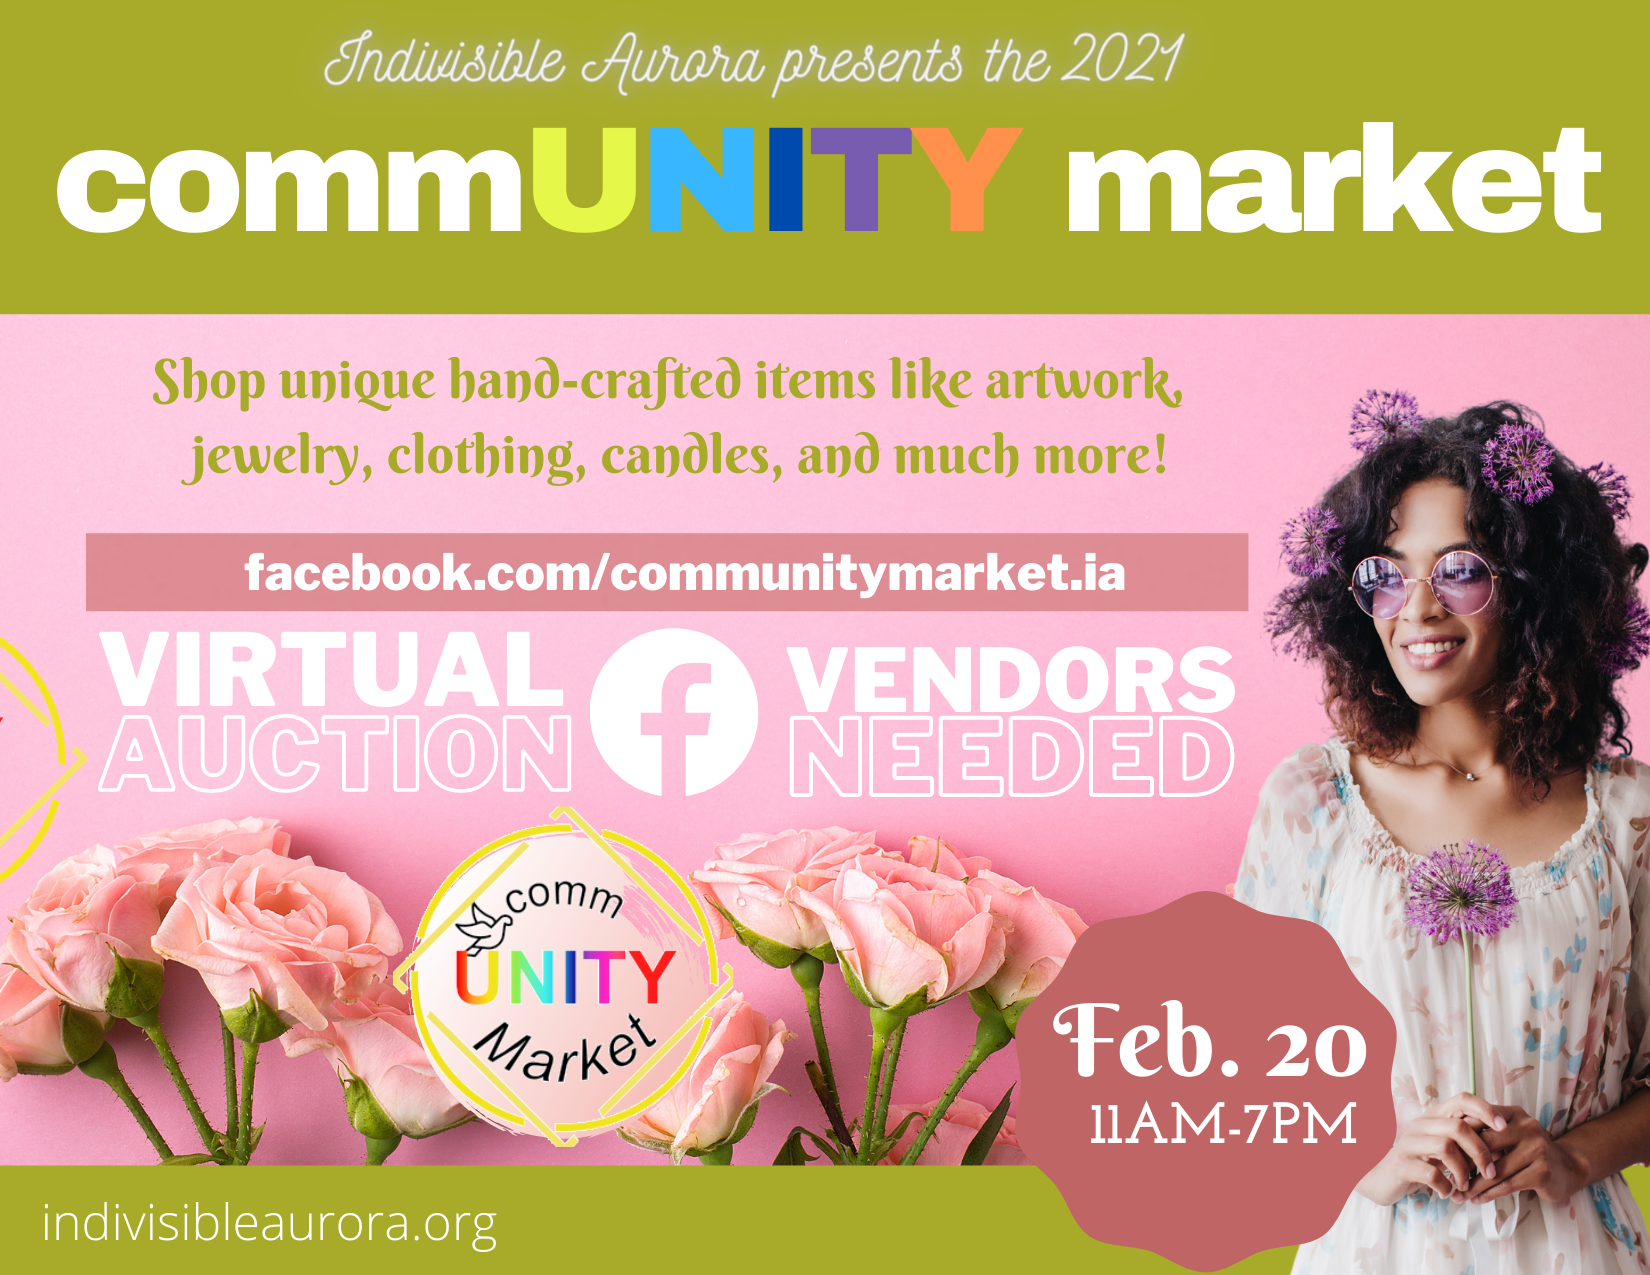 CommUNITY Market 2021 – Event Flyer